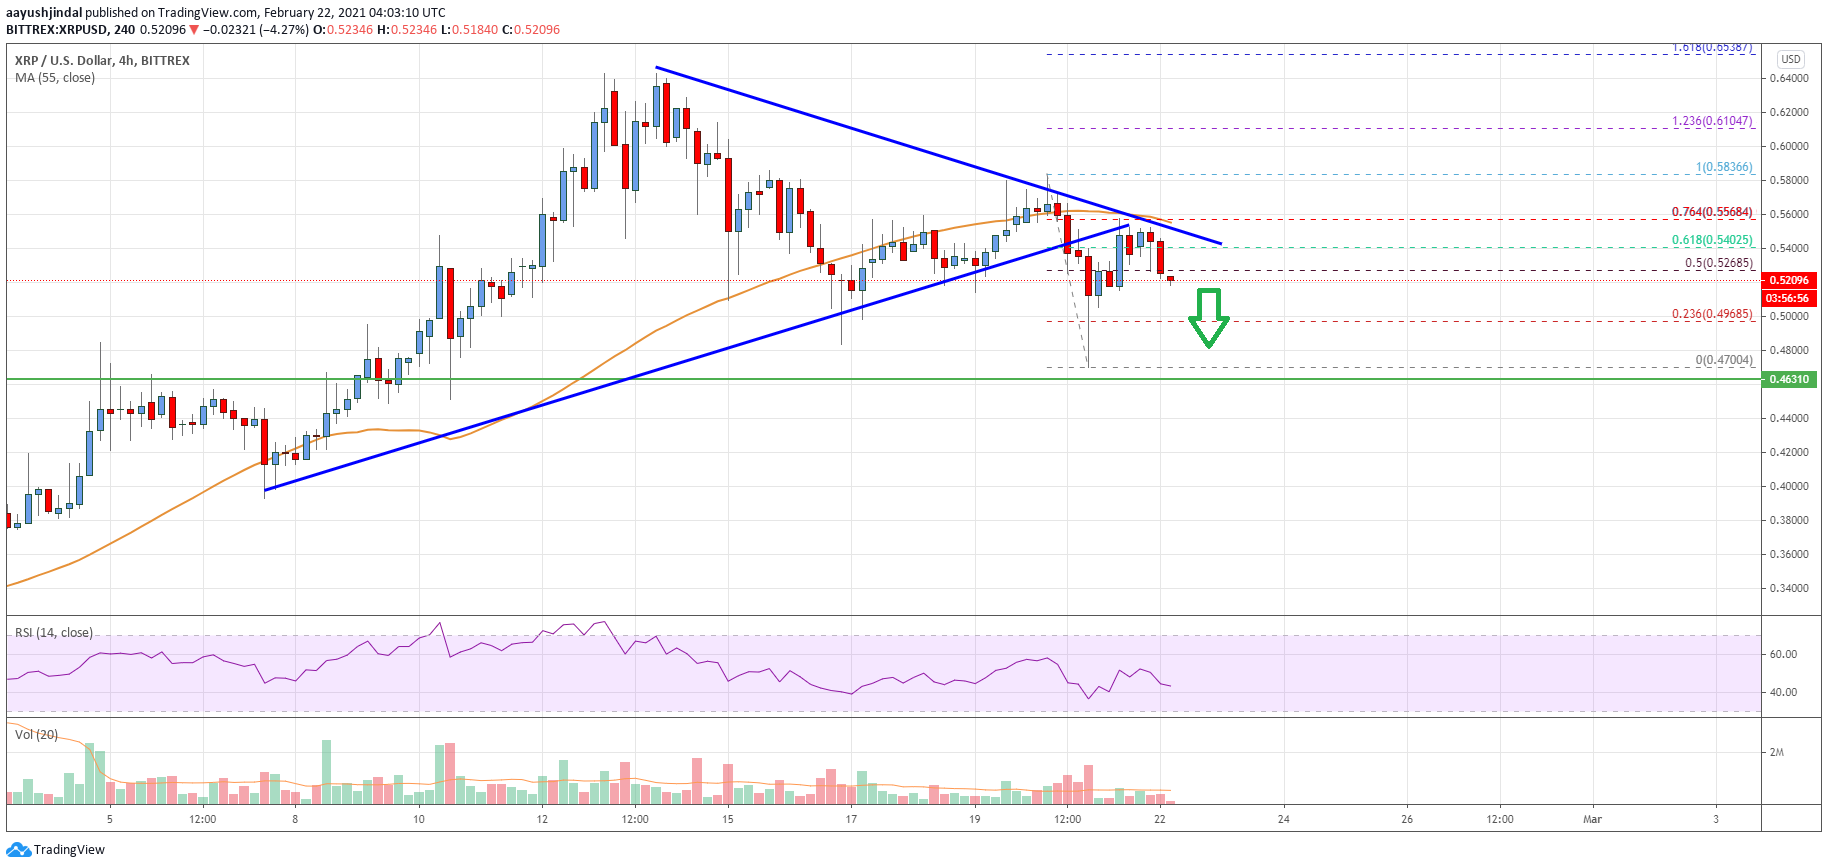 Ripple Price Analysis: Risk of More Losses Towards $0.46 | Live Bitcoin News